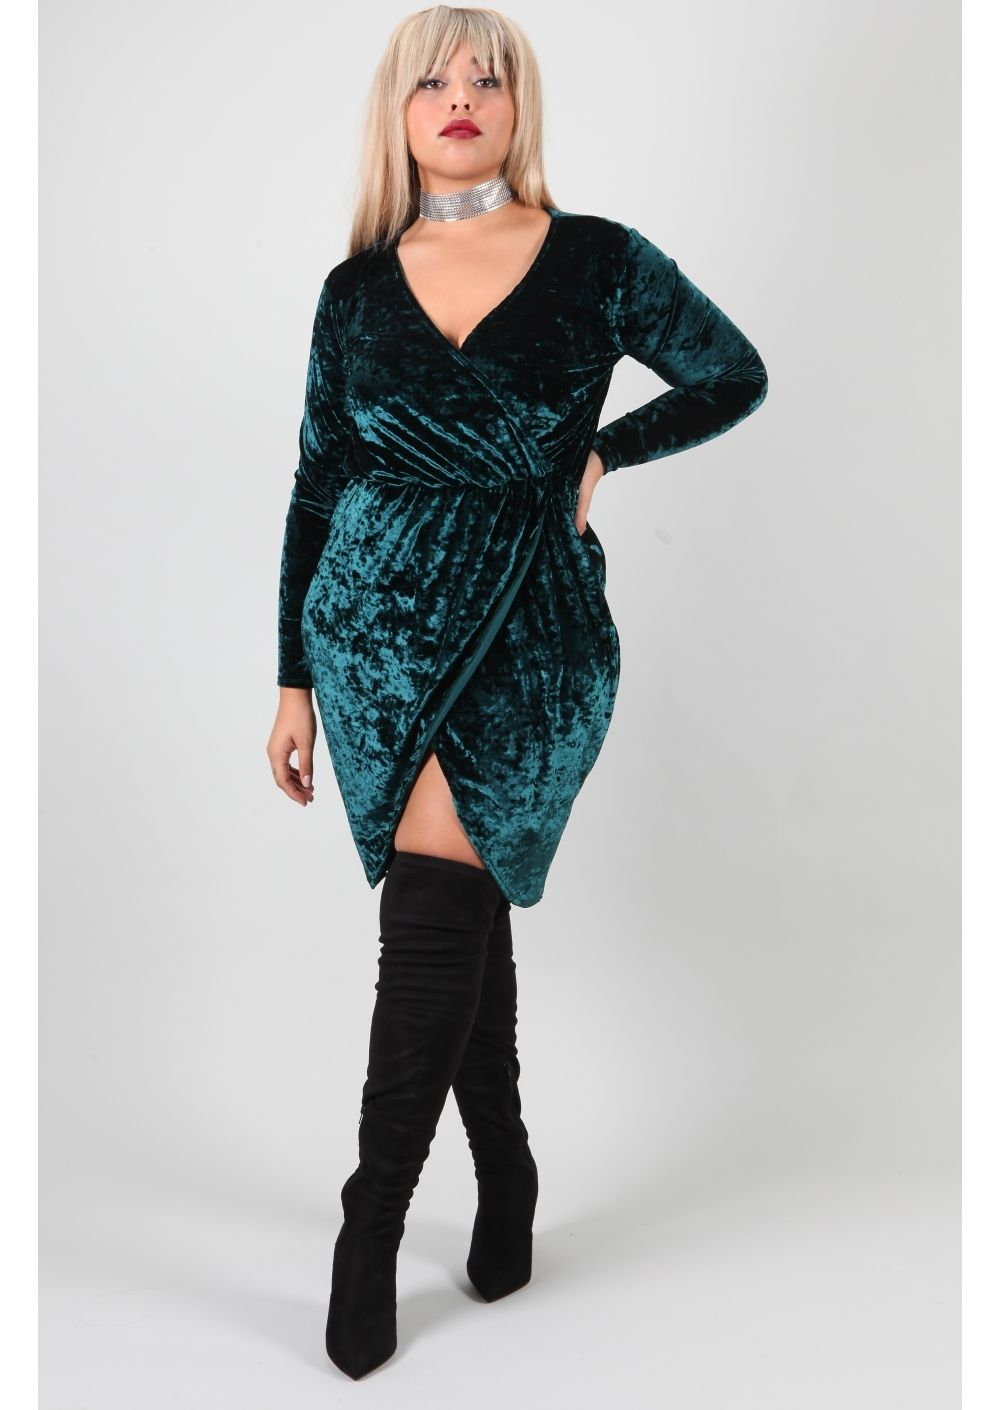 Plus Viola Crushed Velvet Wrap Dress Interesting And Wearable